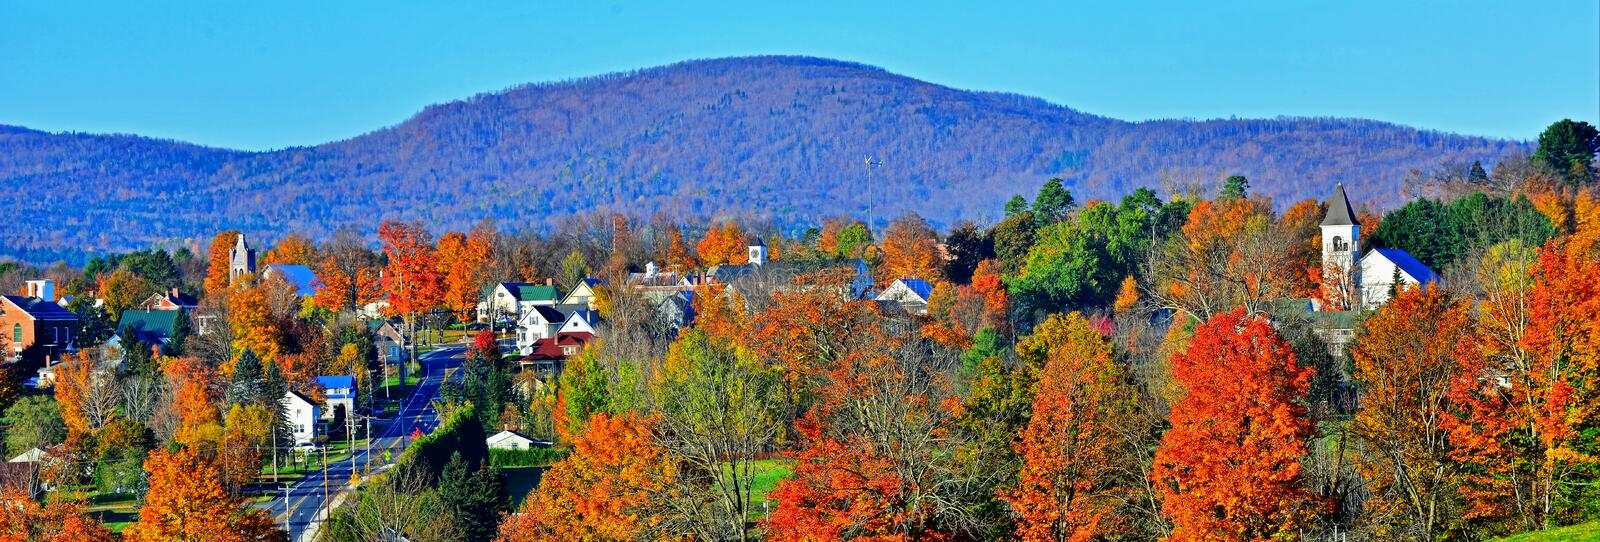 Rural Danville Vermont tucked away in the colorful green mountains HDR. stock image